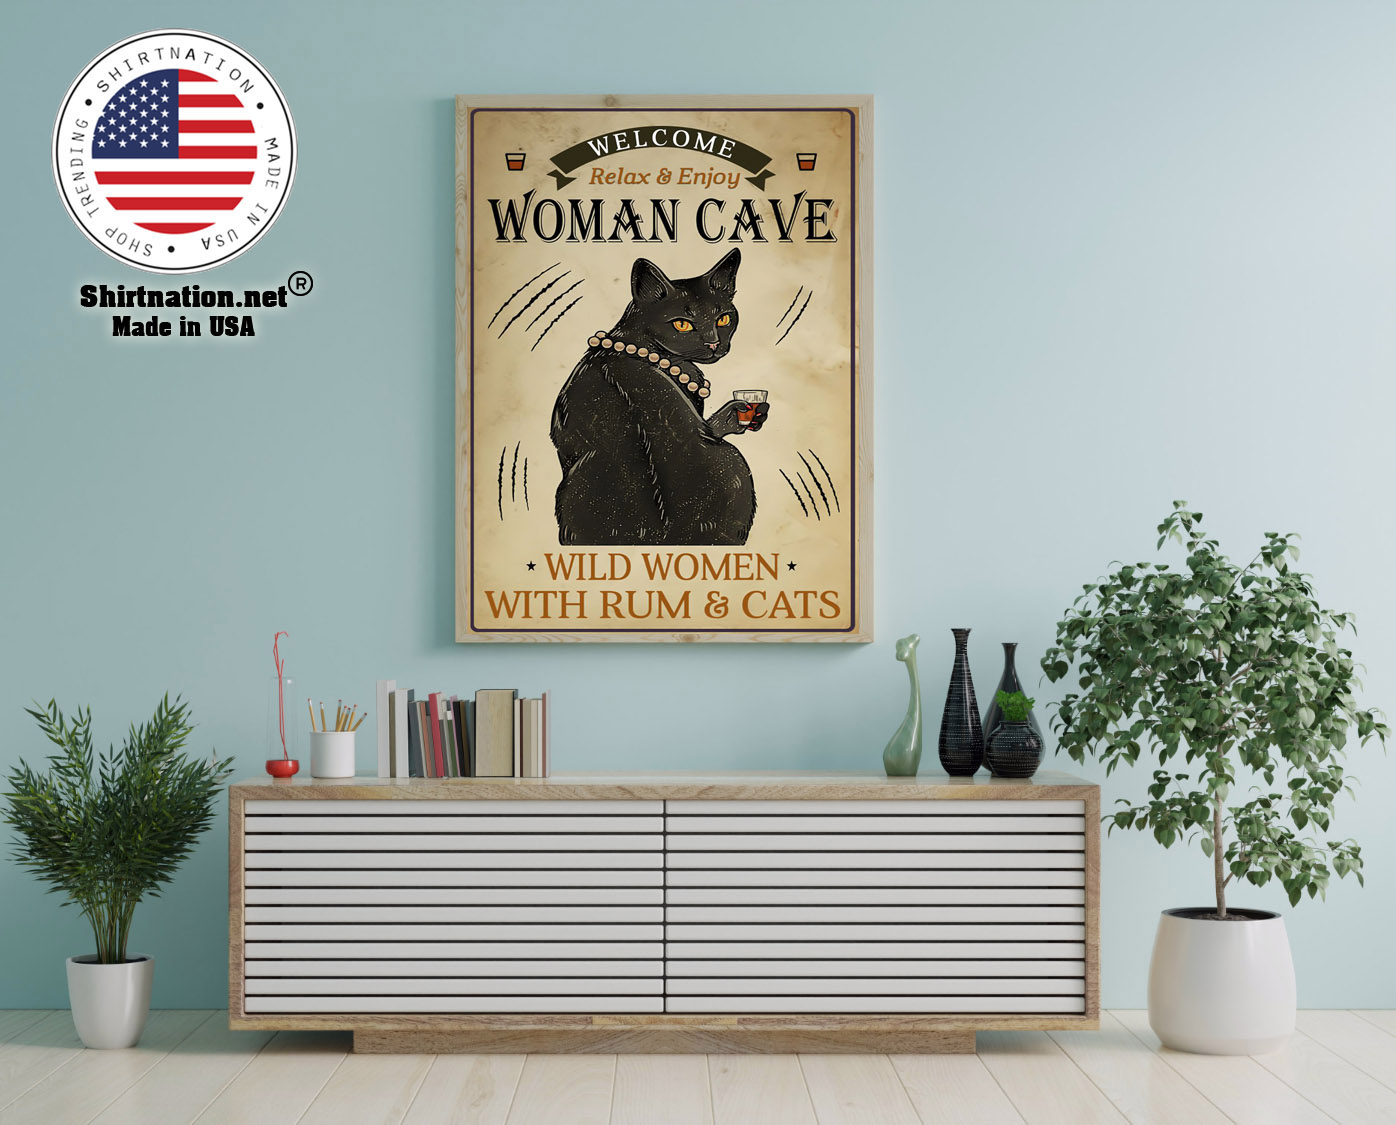 Welcome relax enjoy woman cave will women with rum and cats poster 12